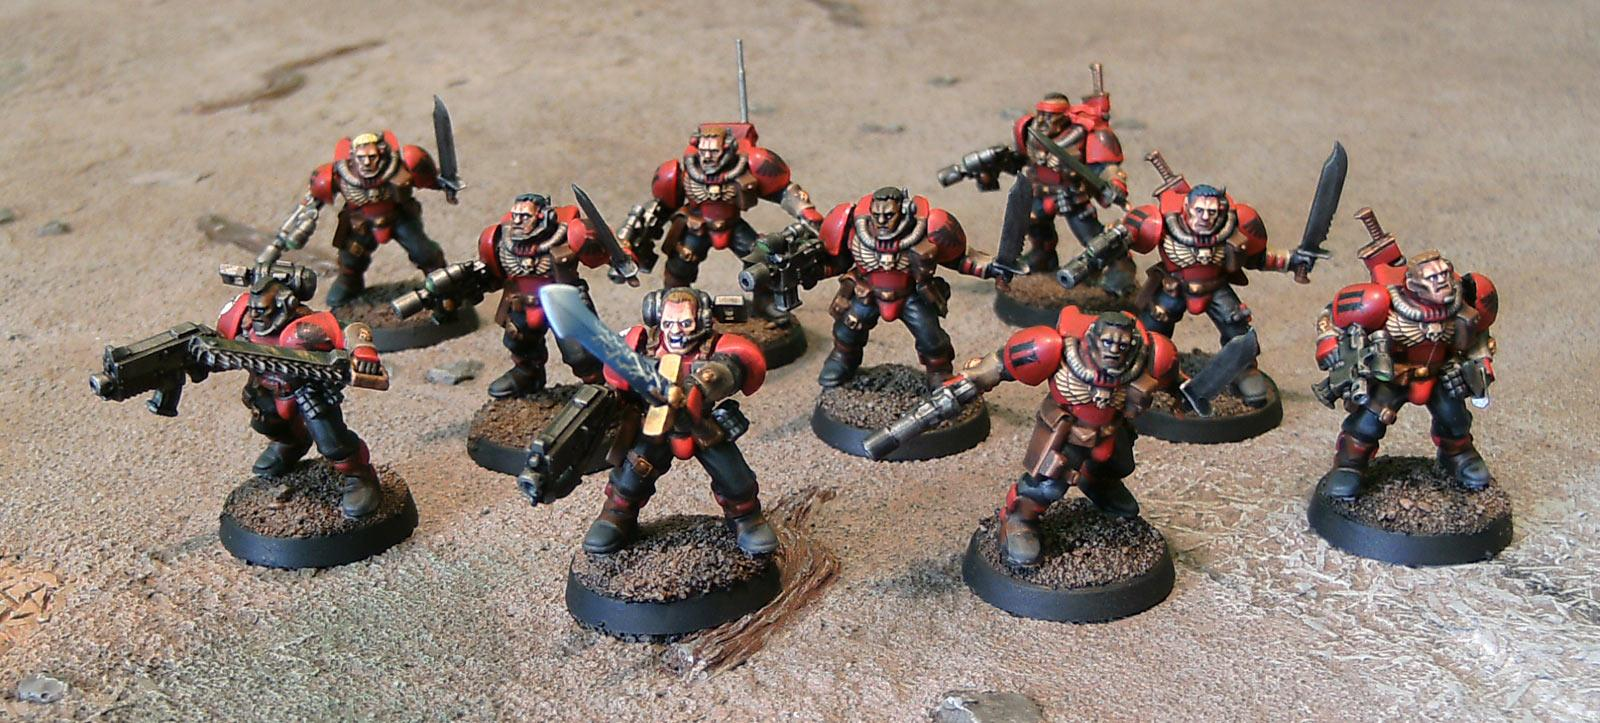 Blood Ravens, Magnet, Maxmini, Ouze, Scouts, Space Marines, Warhammer 40,000